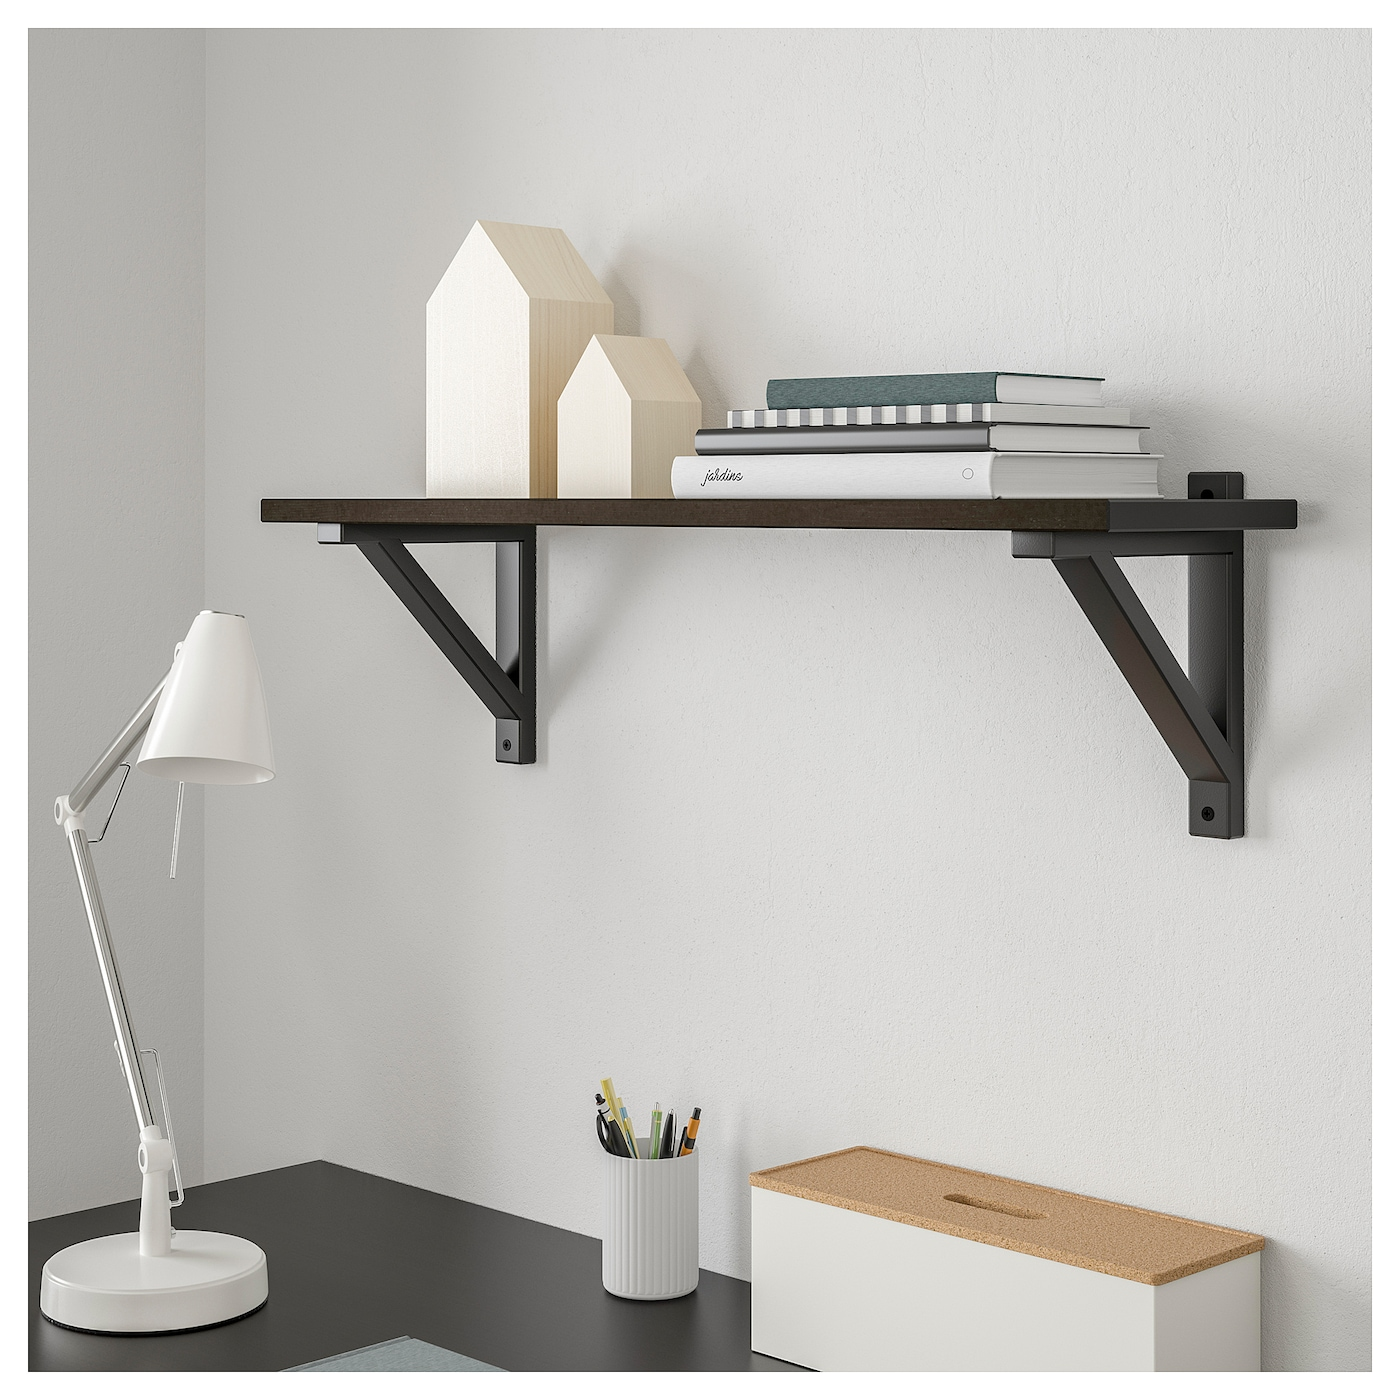 IKEA EKBY VALTER/EKBY HEMNES wall shelf Solid wood is a durable natural material.